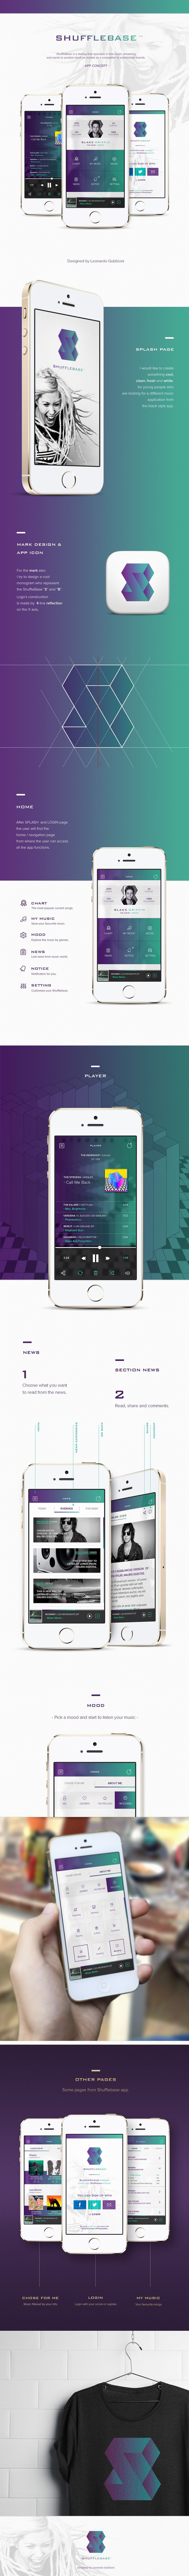 Shufflebase | Music App Concept on Behance